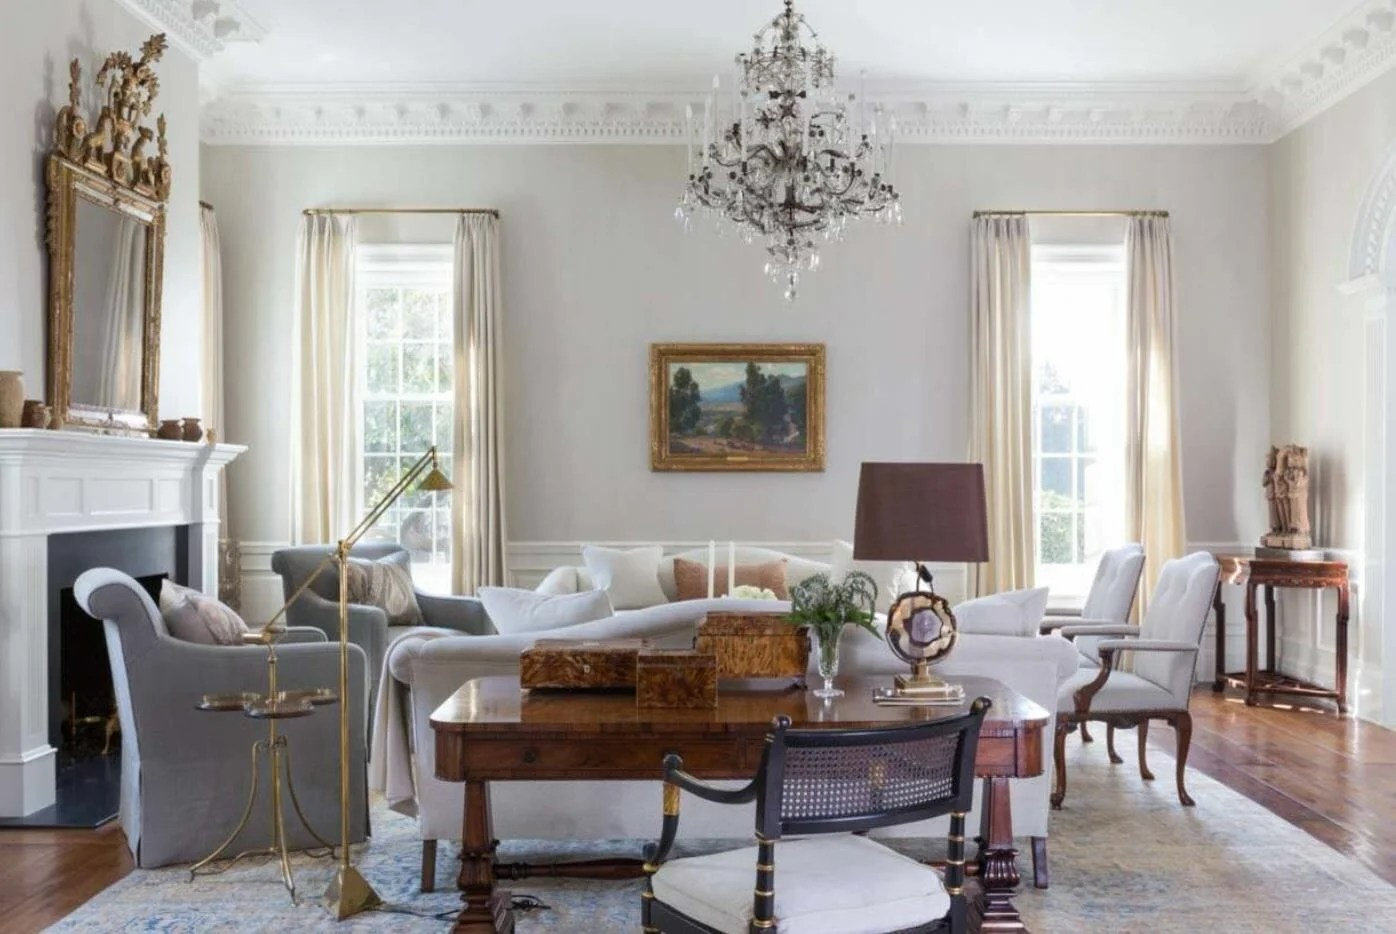 Traditional Interior Design: 7 Best Tips to Create a ... on Beautiful Room Decor  id=14922